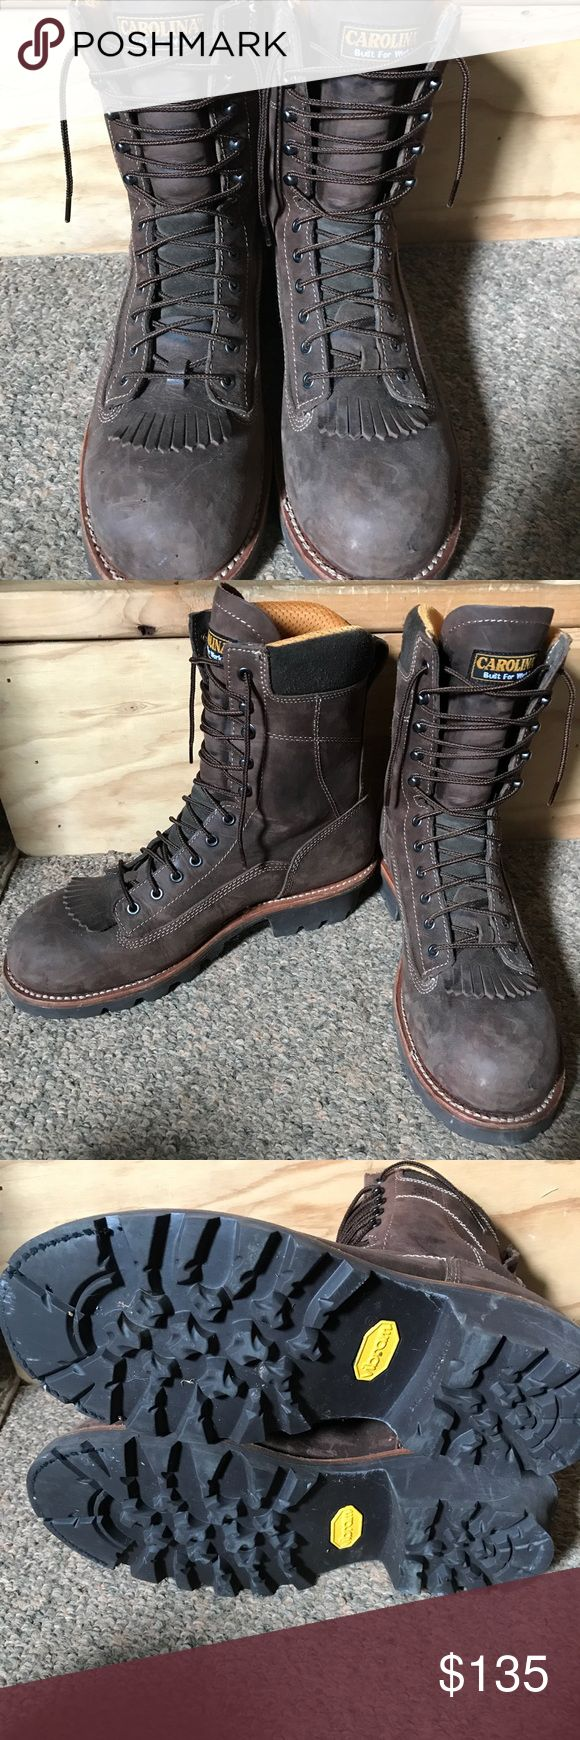 Carolina Logger Boots These are waterproof, leather boots with a steel toe. Size 11 1/2. These were worn twice. In excellent used condition. Smoke free home. Offers welcome. carolina Shoes Boots